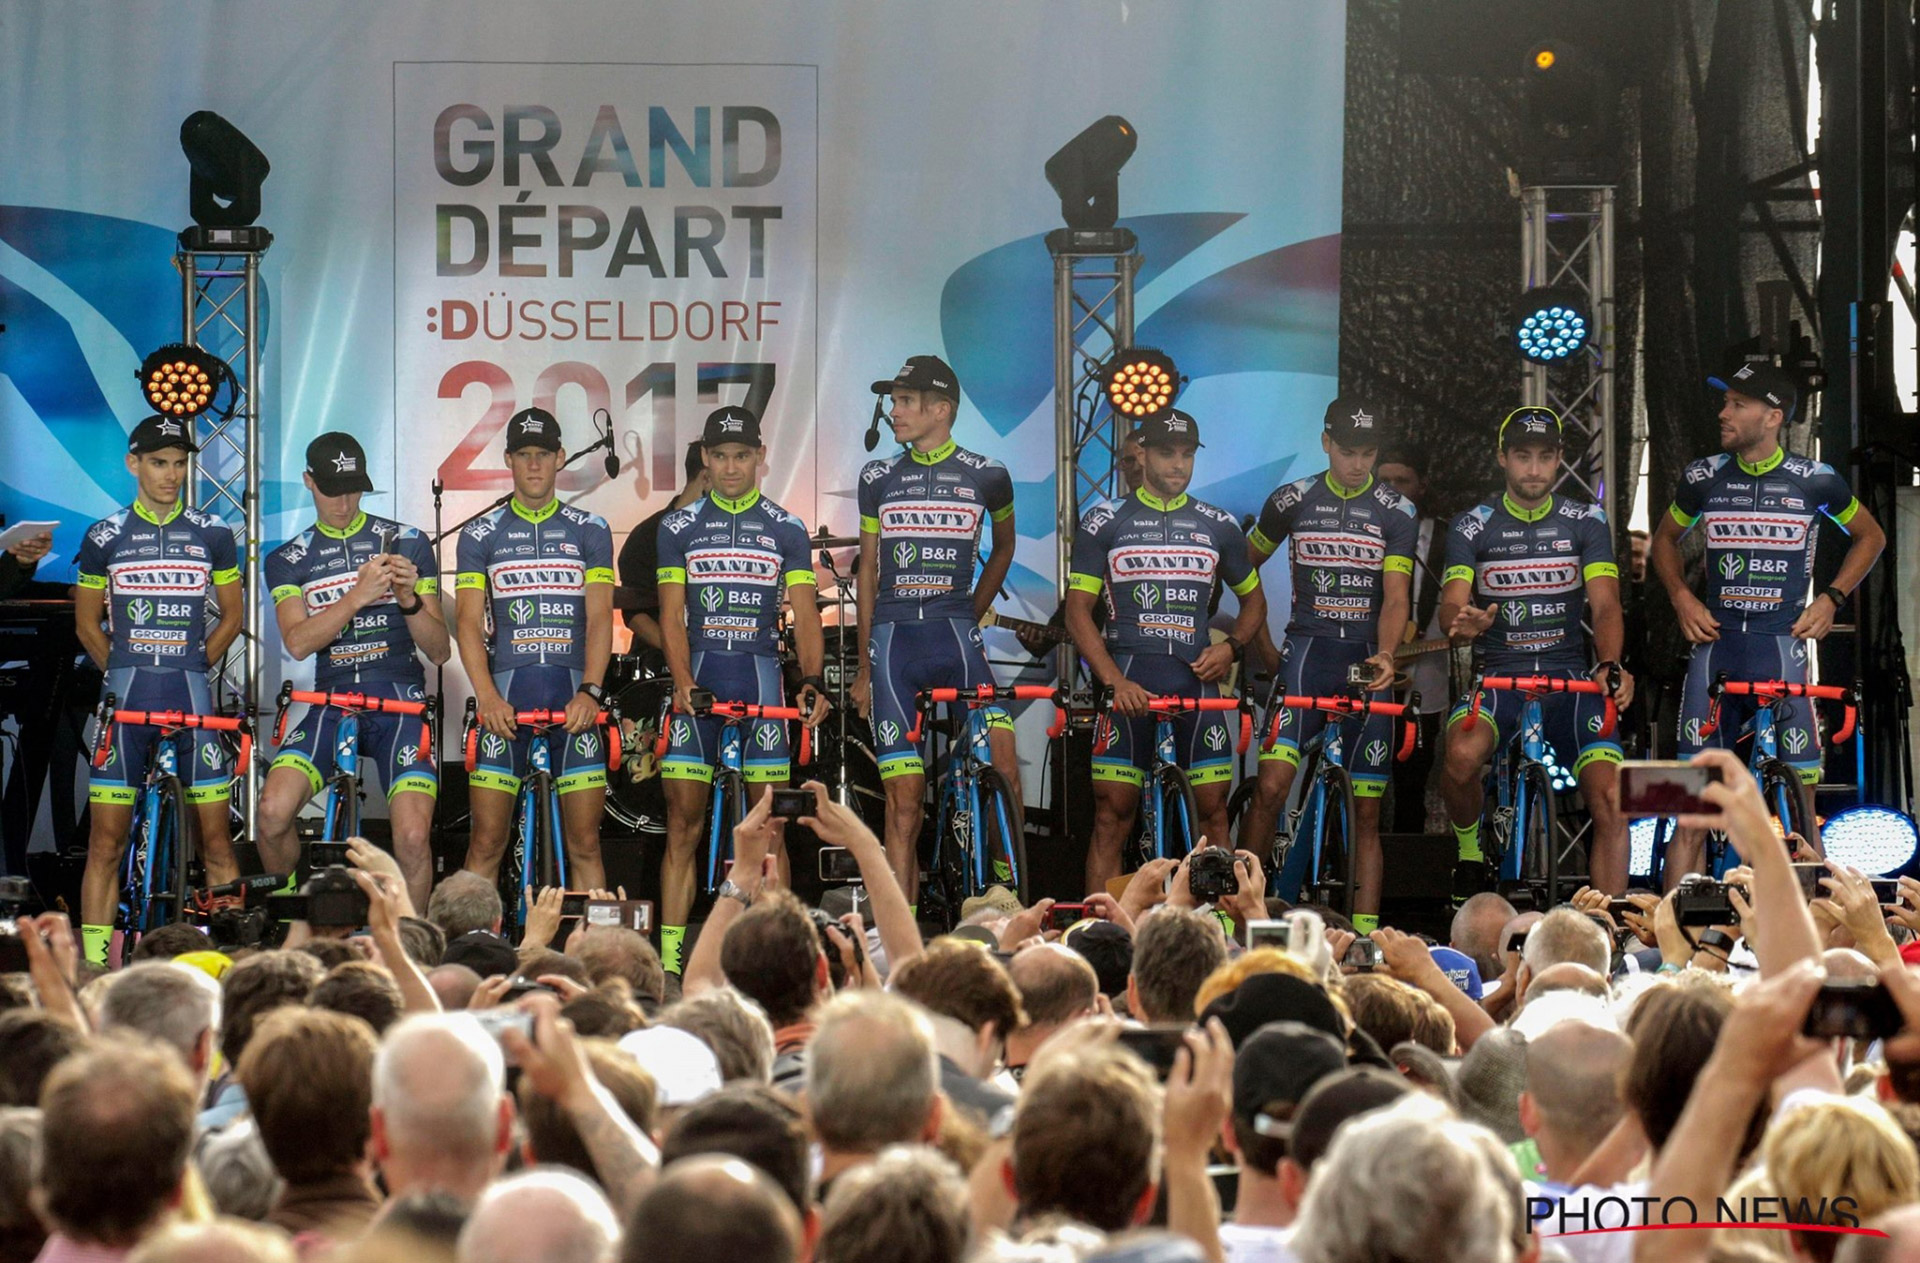 Présentation officielle des 9 coureurs de la Wanty-Groupe Gobert à Düsseldorf © Photo News